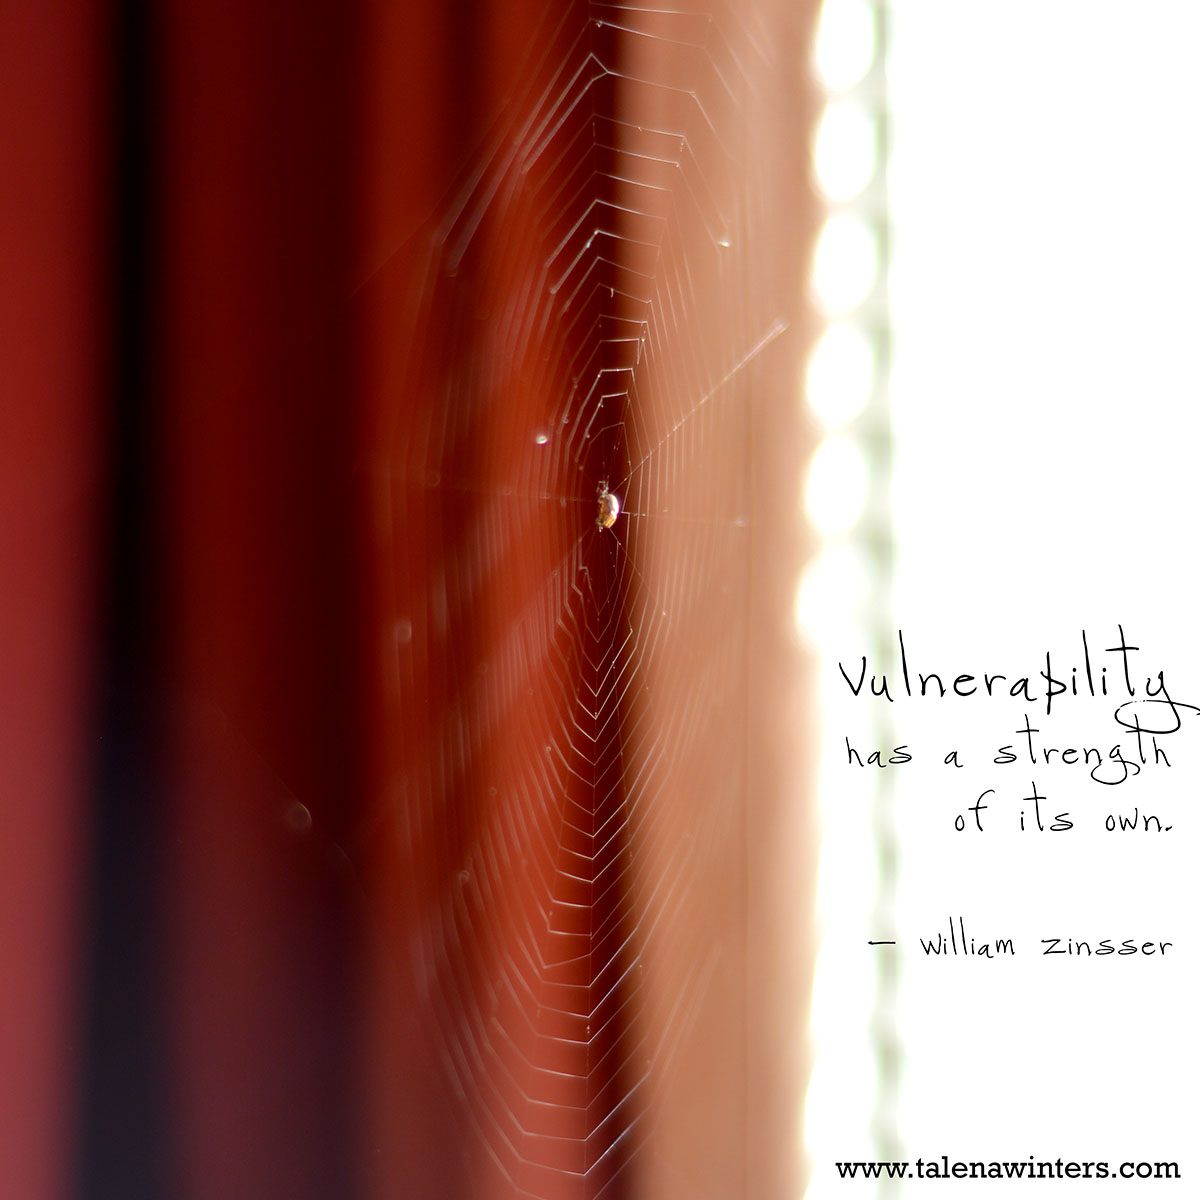 """Vulnerability has a strength of its own."" - William Zinsser. Spider on its web in the slatted sunlight of my front window."